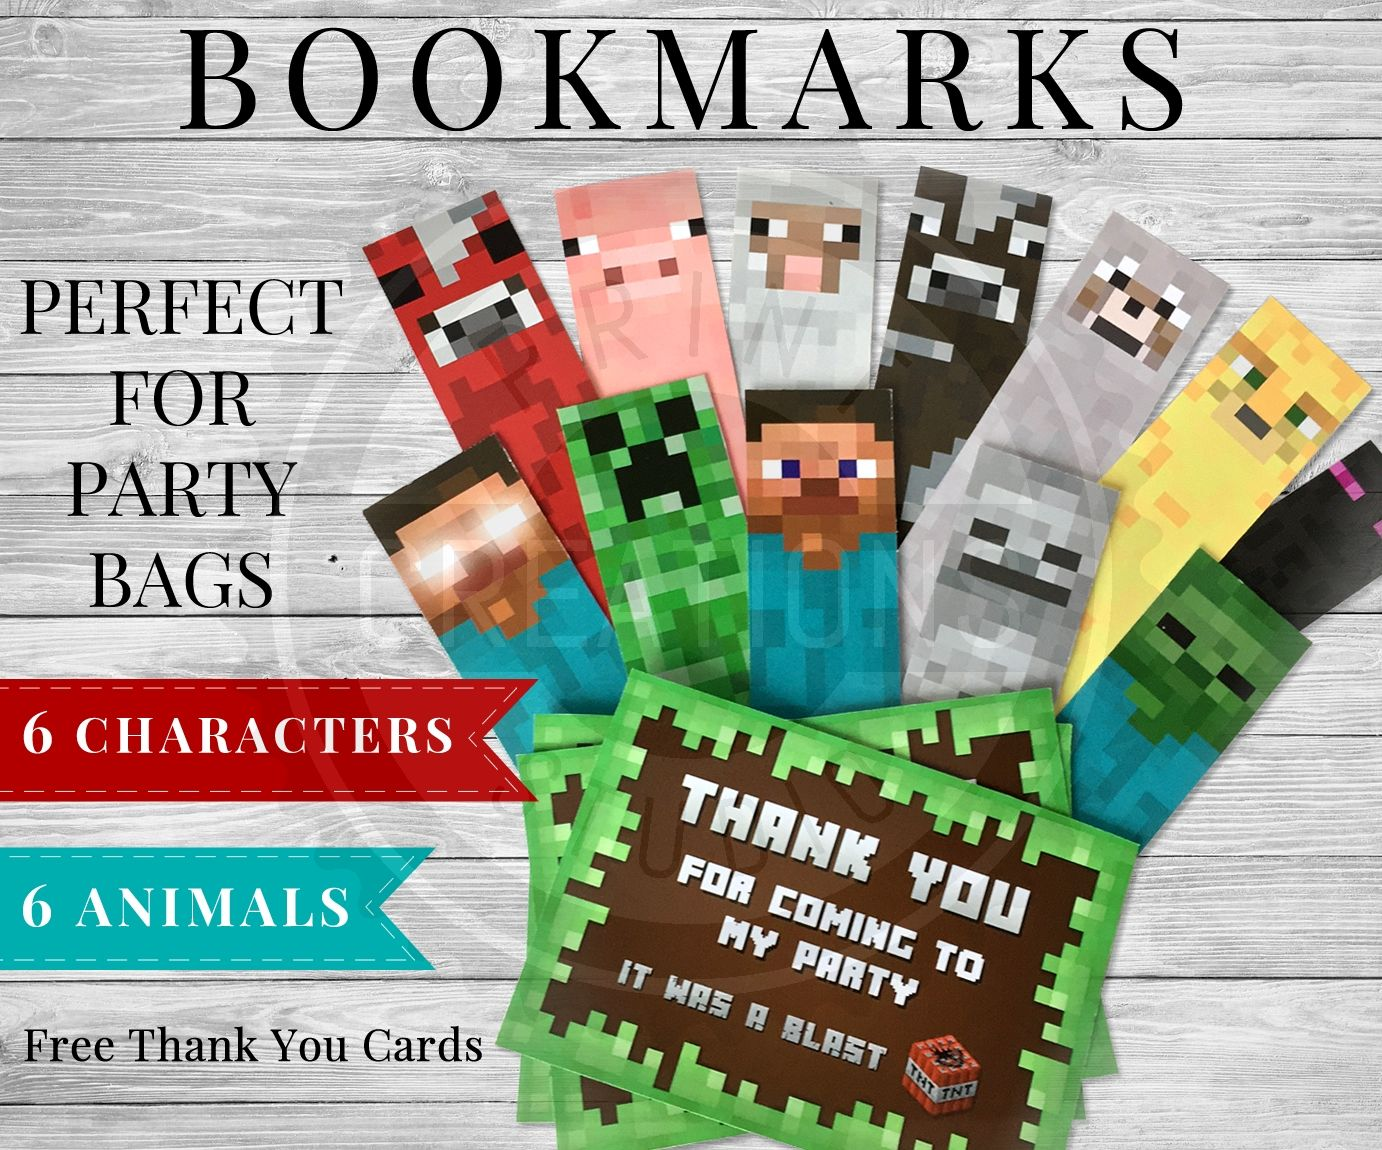 These printable Minecraft bookmarks are simply adorable and perfect for party bags! Minecraft thank you cards included to add with your Minecraft Bookmarks.